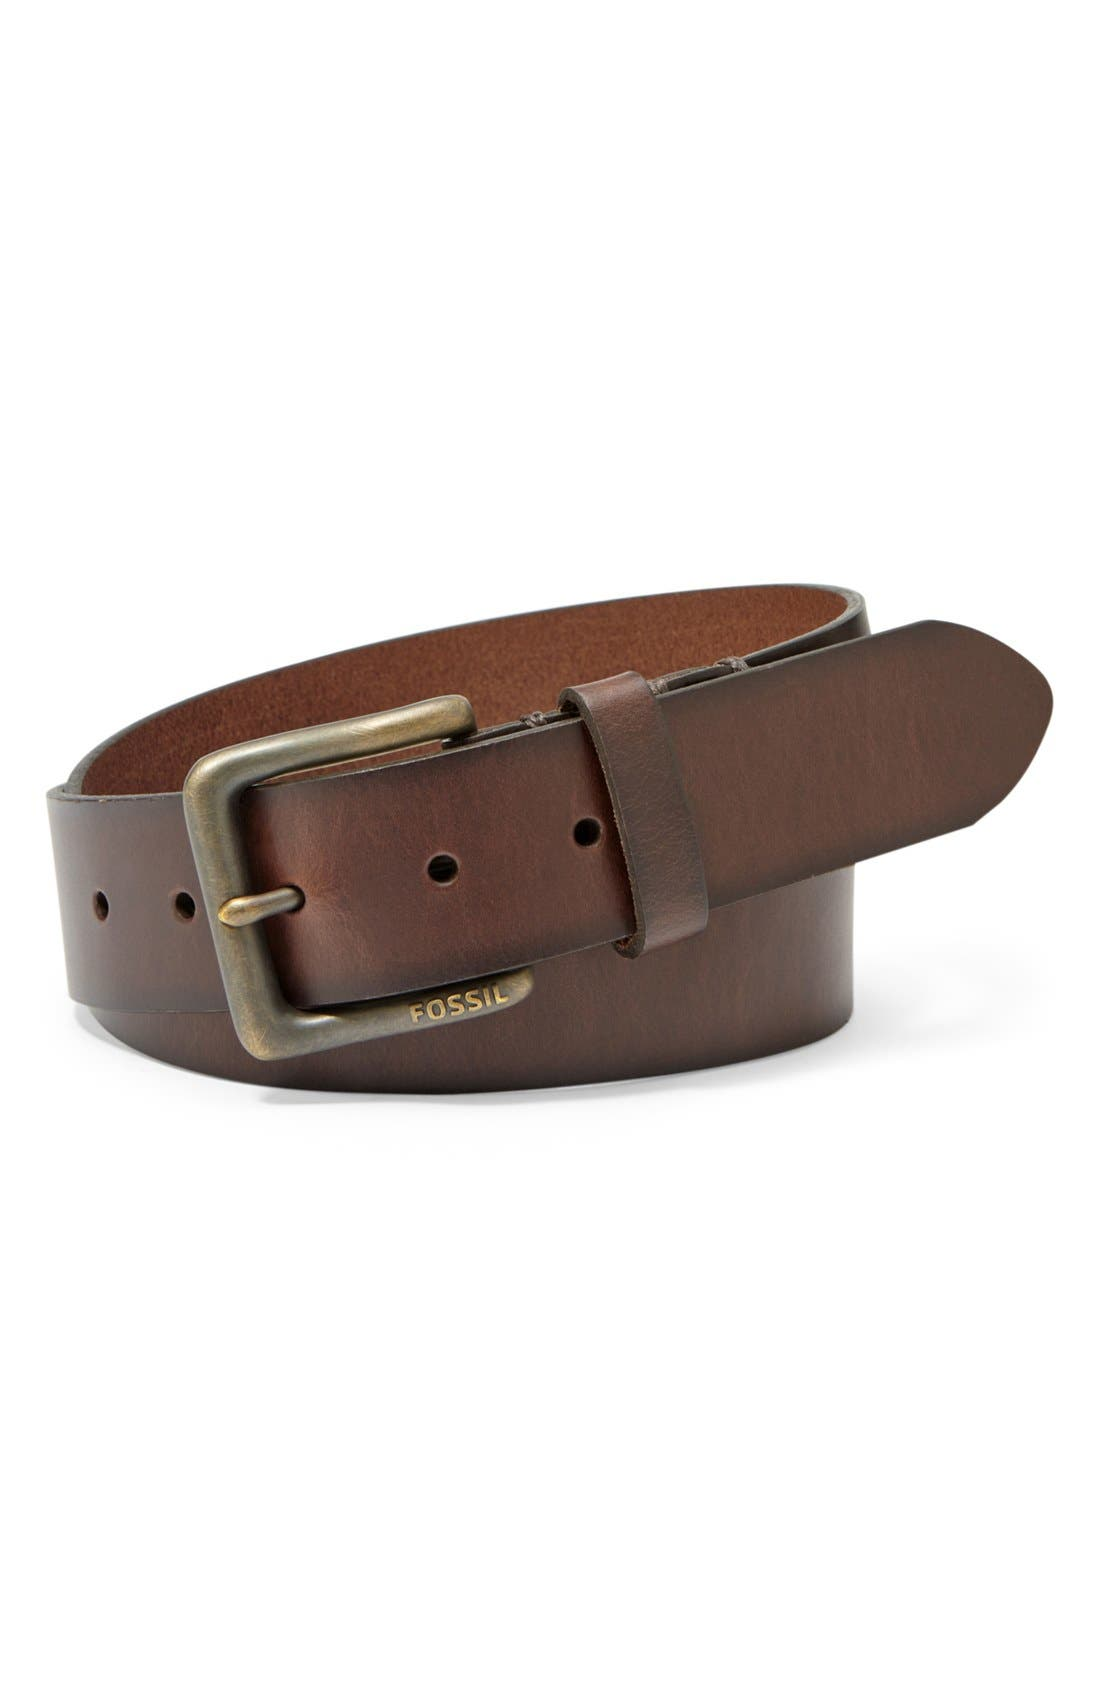 FOSSIL,                             'Artie' Belt,                             Main thumbnail 1, color,                             201